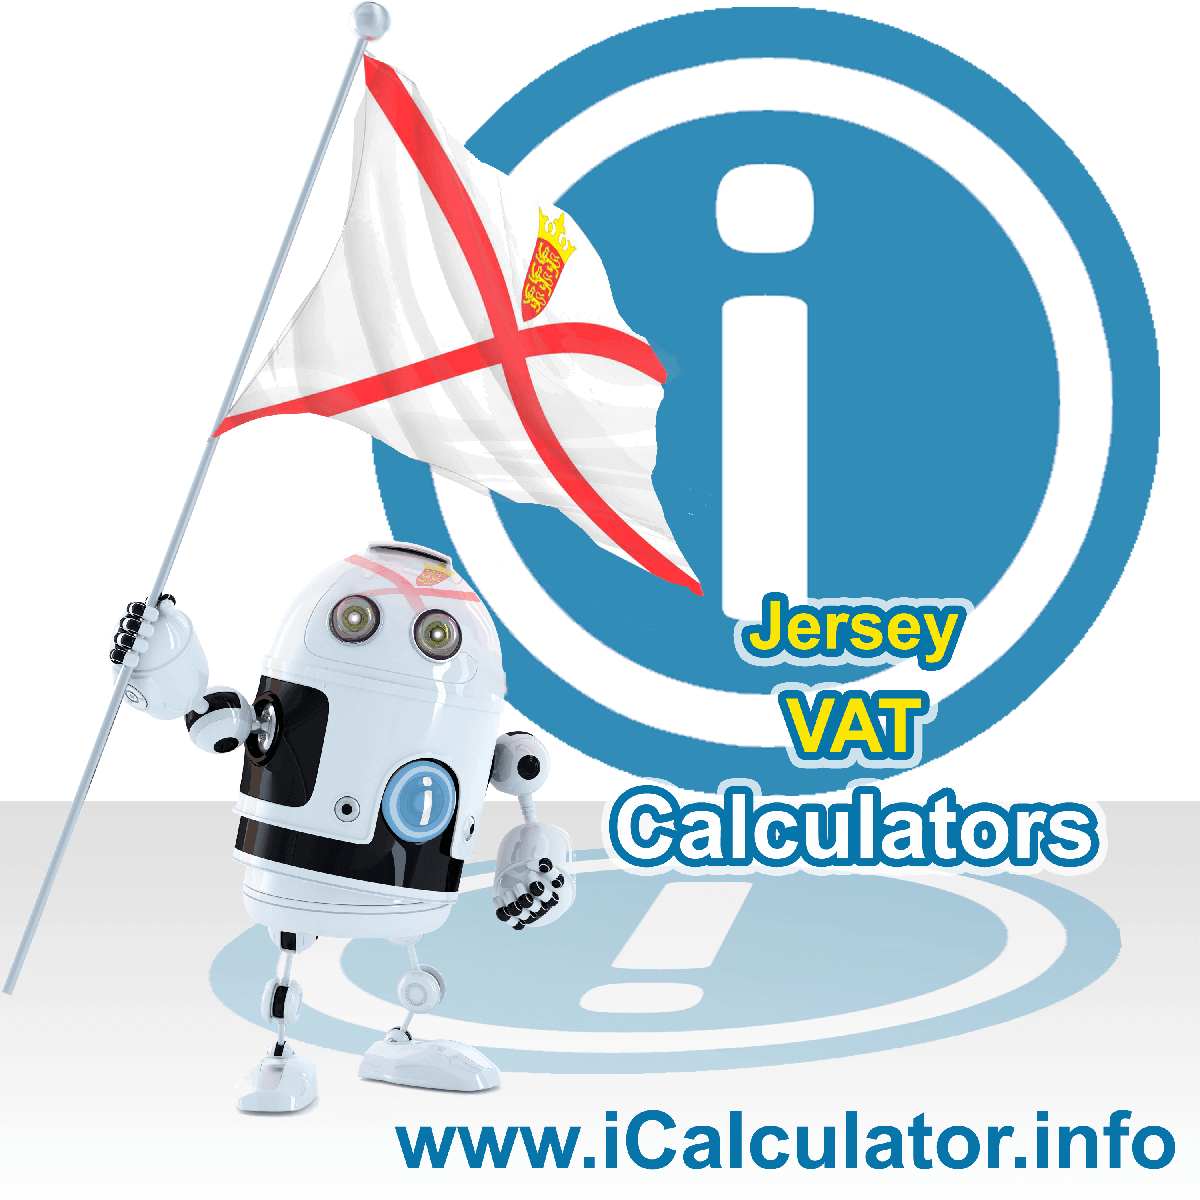 Jersey VAT Calculator. This image shows the Jersey flag and information relating to the VAT formula used for calculating Value Added Tax in Jersey using the Jersey VAT Calculator in 2021